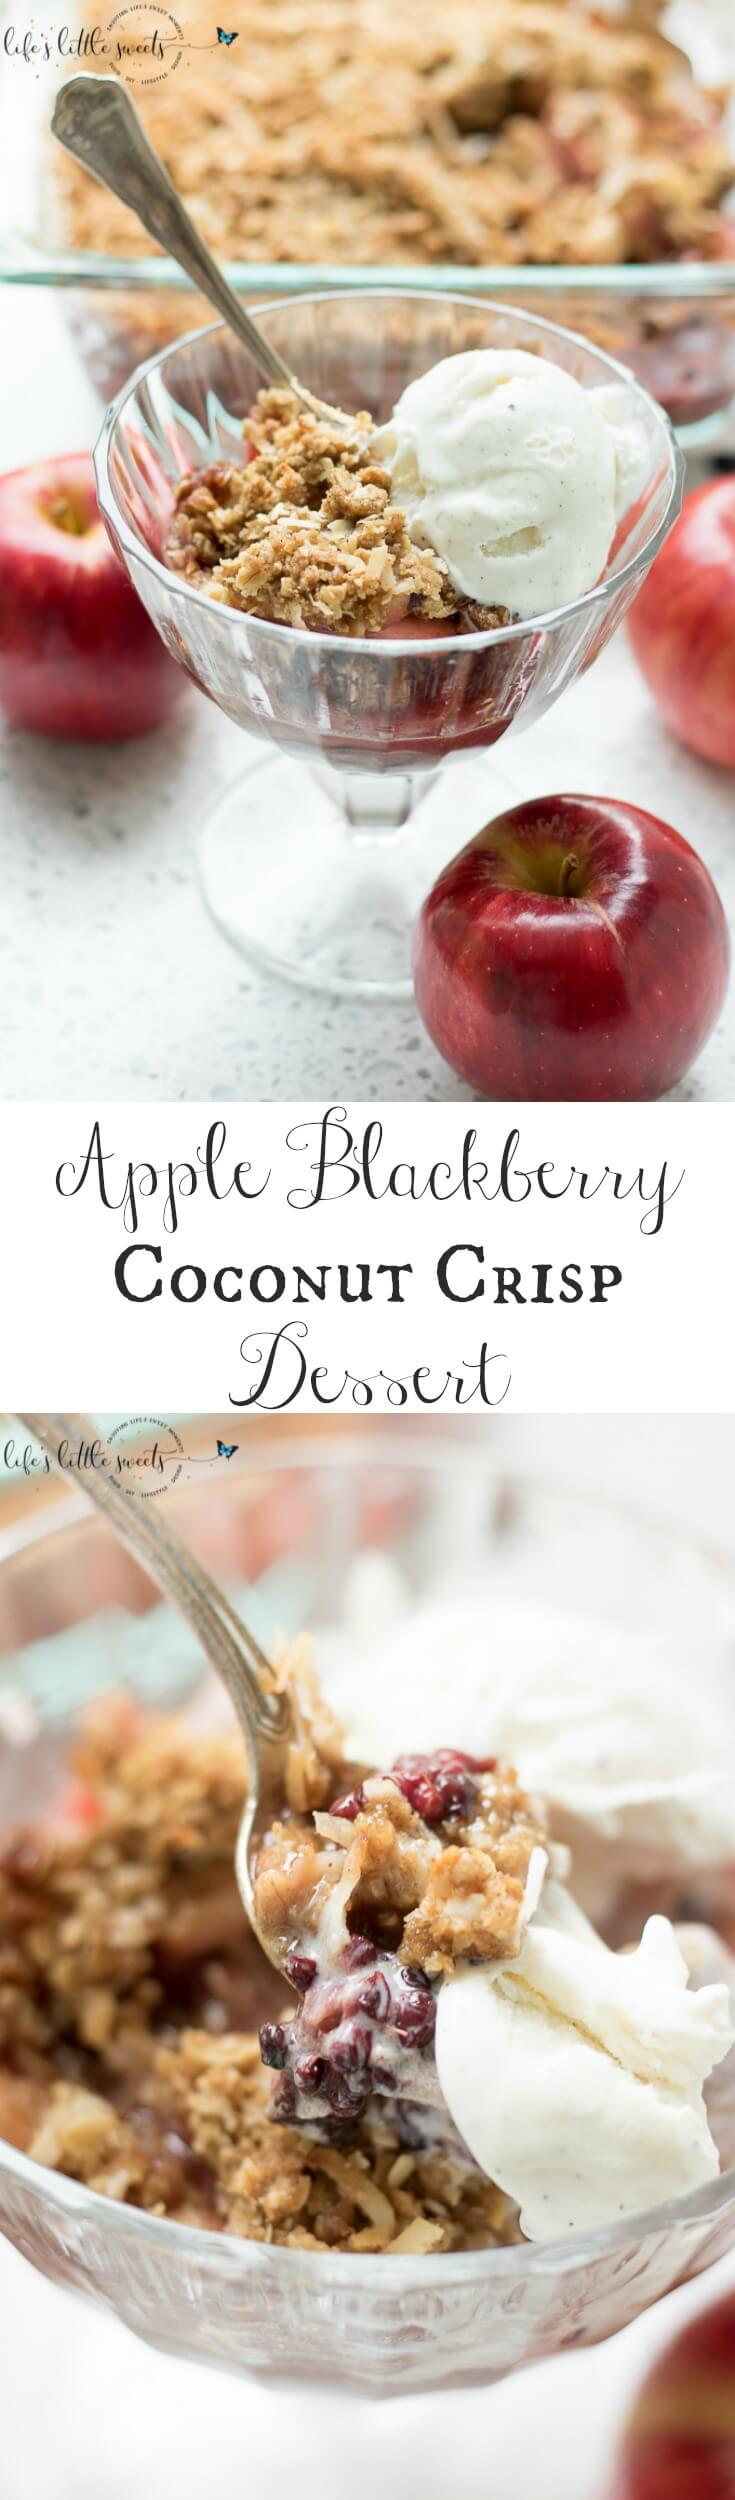 This Apple Blackberry Coconut Crisp recipe has fresh apples and blackberries with a cinnamon-brown sugar and coconut oatmeal topping. #apples #blackberries #dessert #crisp #fruitcrisp #fruit #berries #sweet #oats #coconut